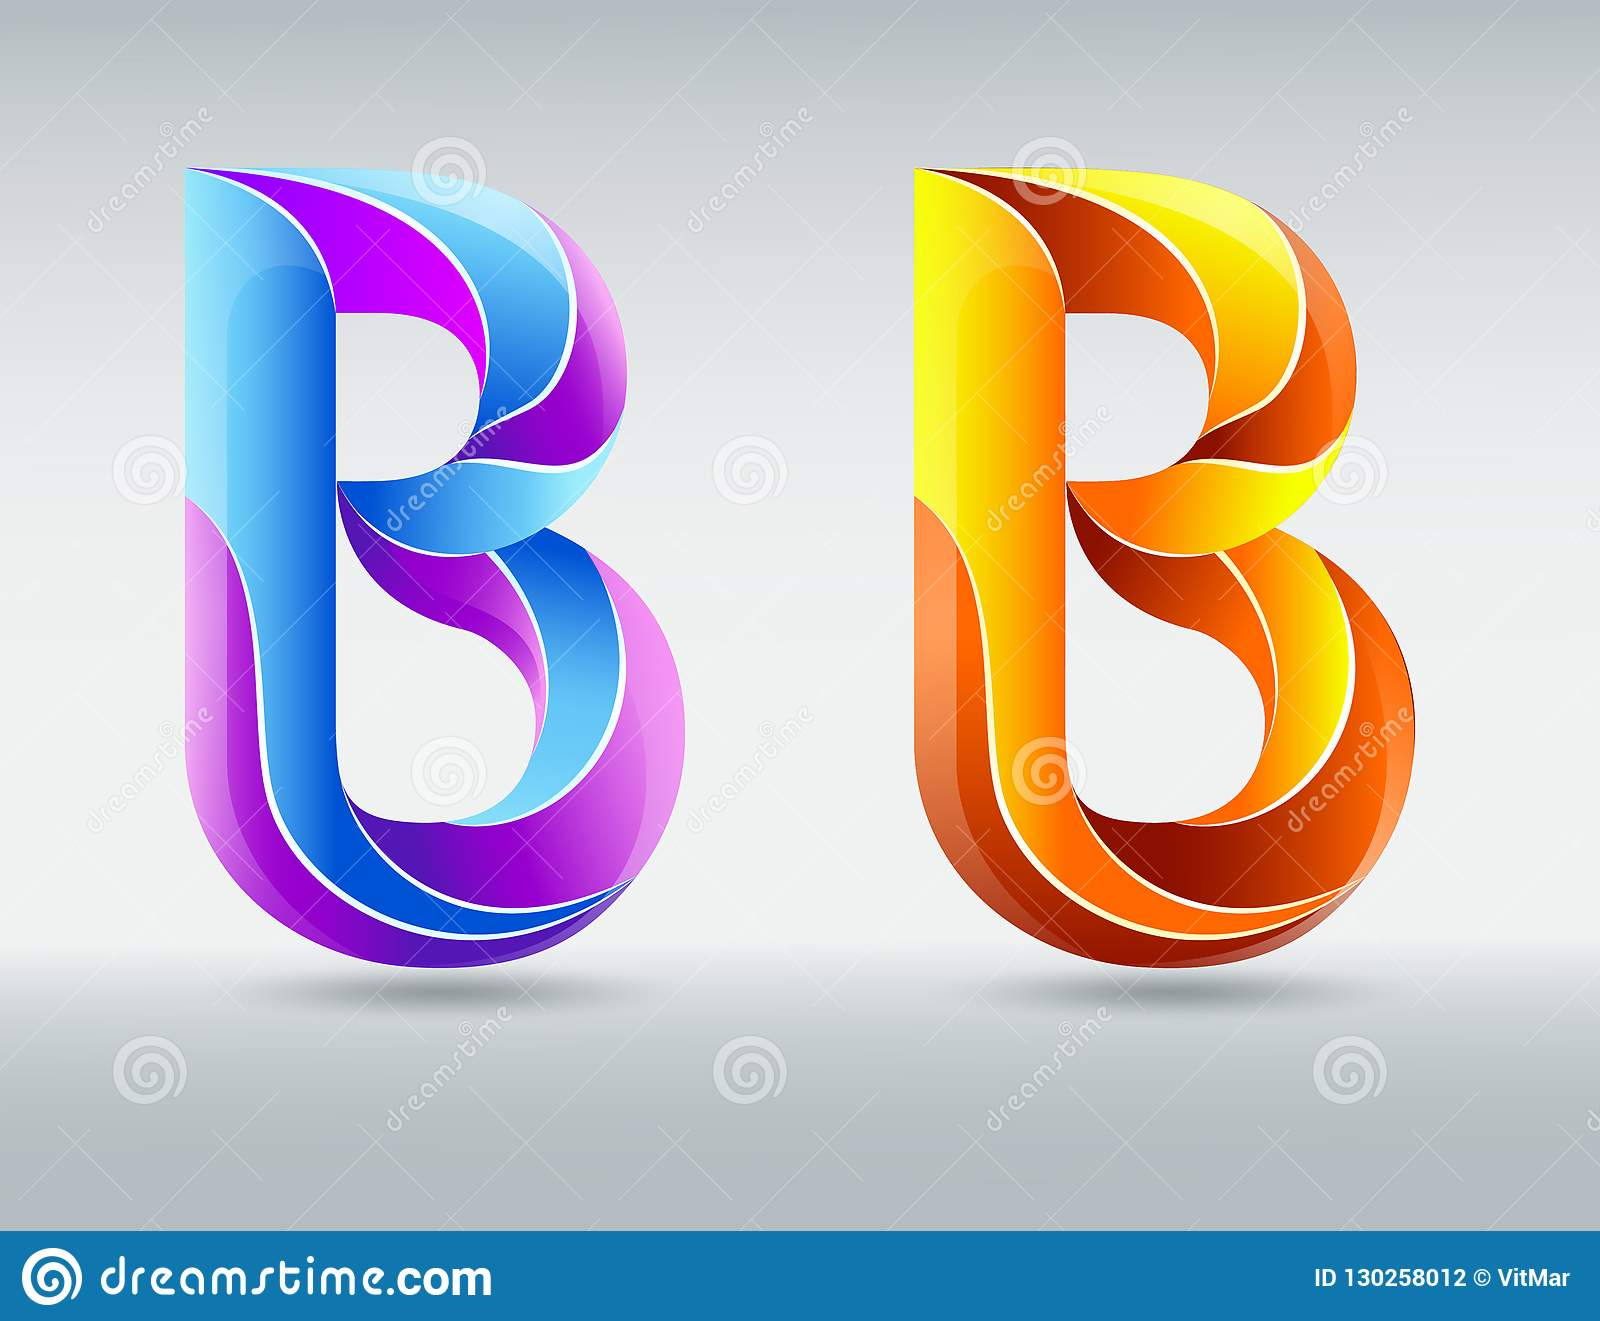 Logo Fonts  Vector Letter B  Creative Twisted 3D Font  Colorful